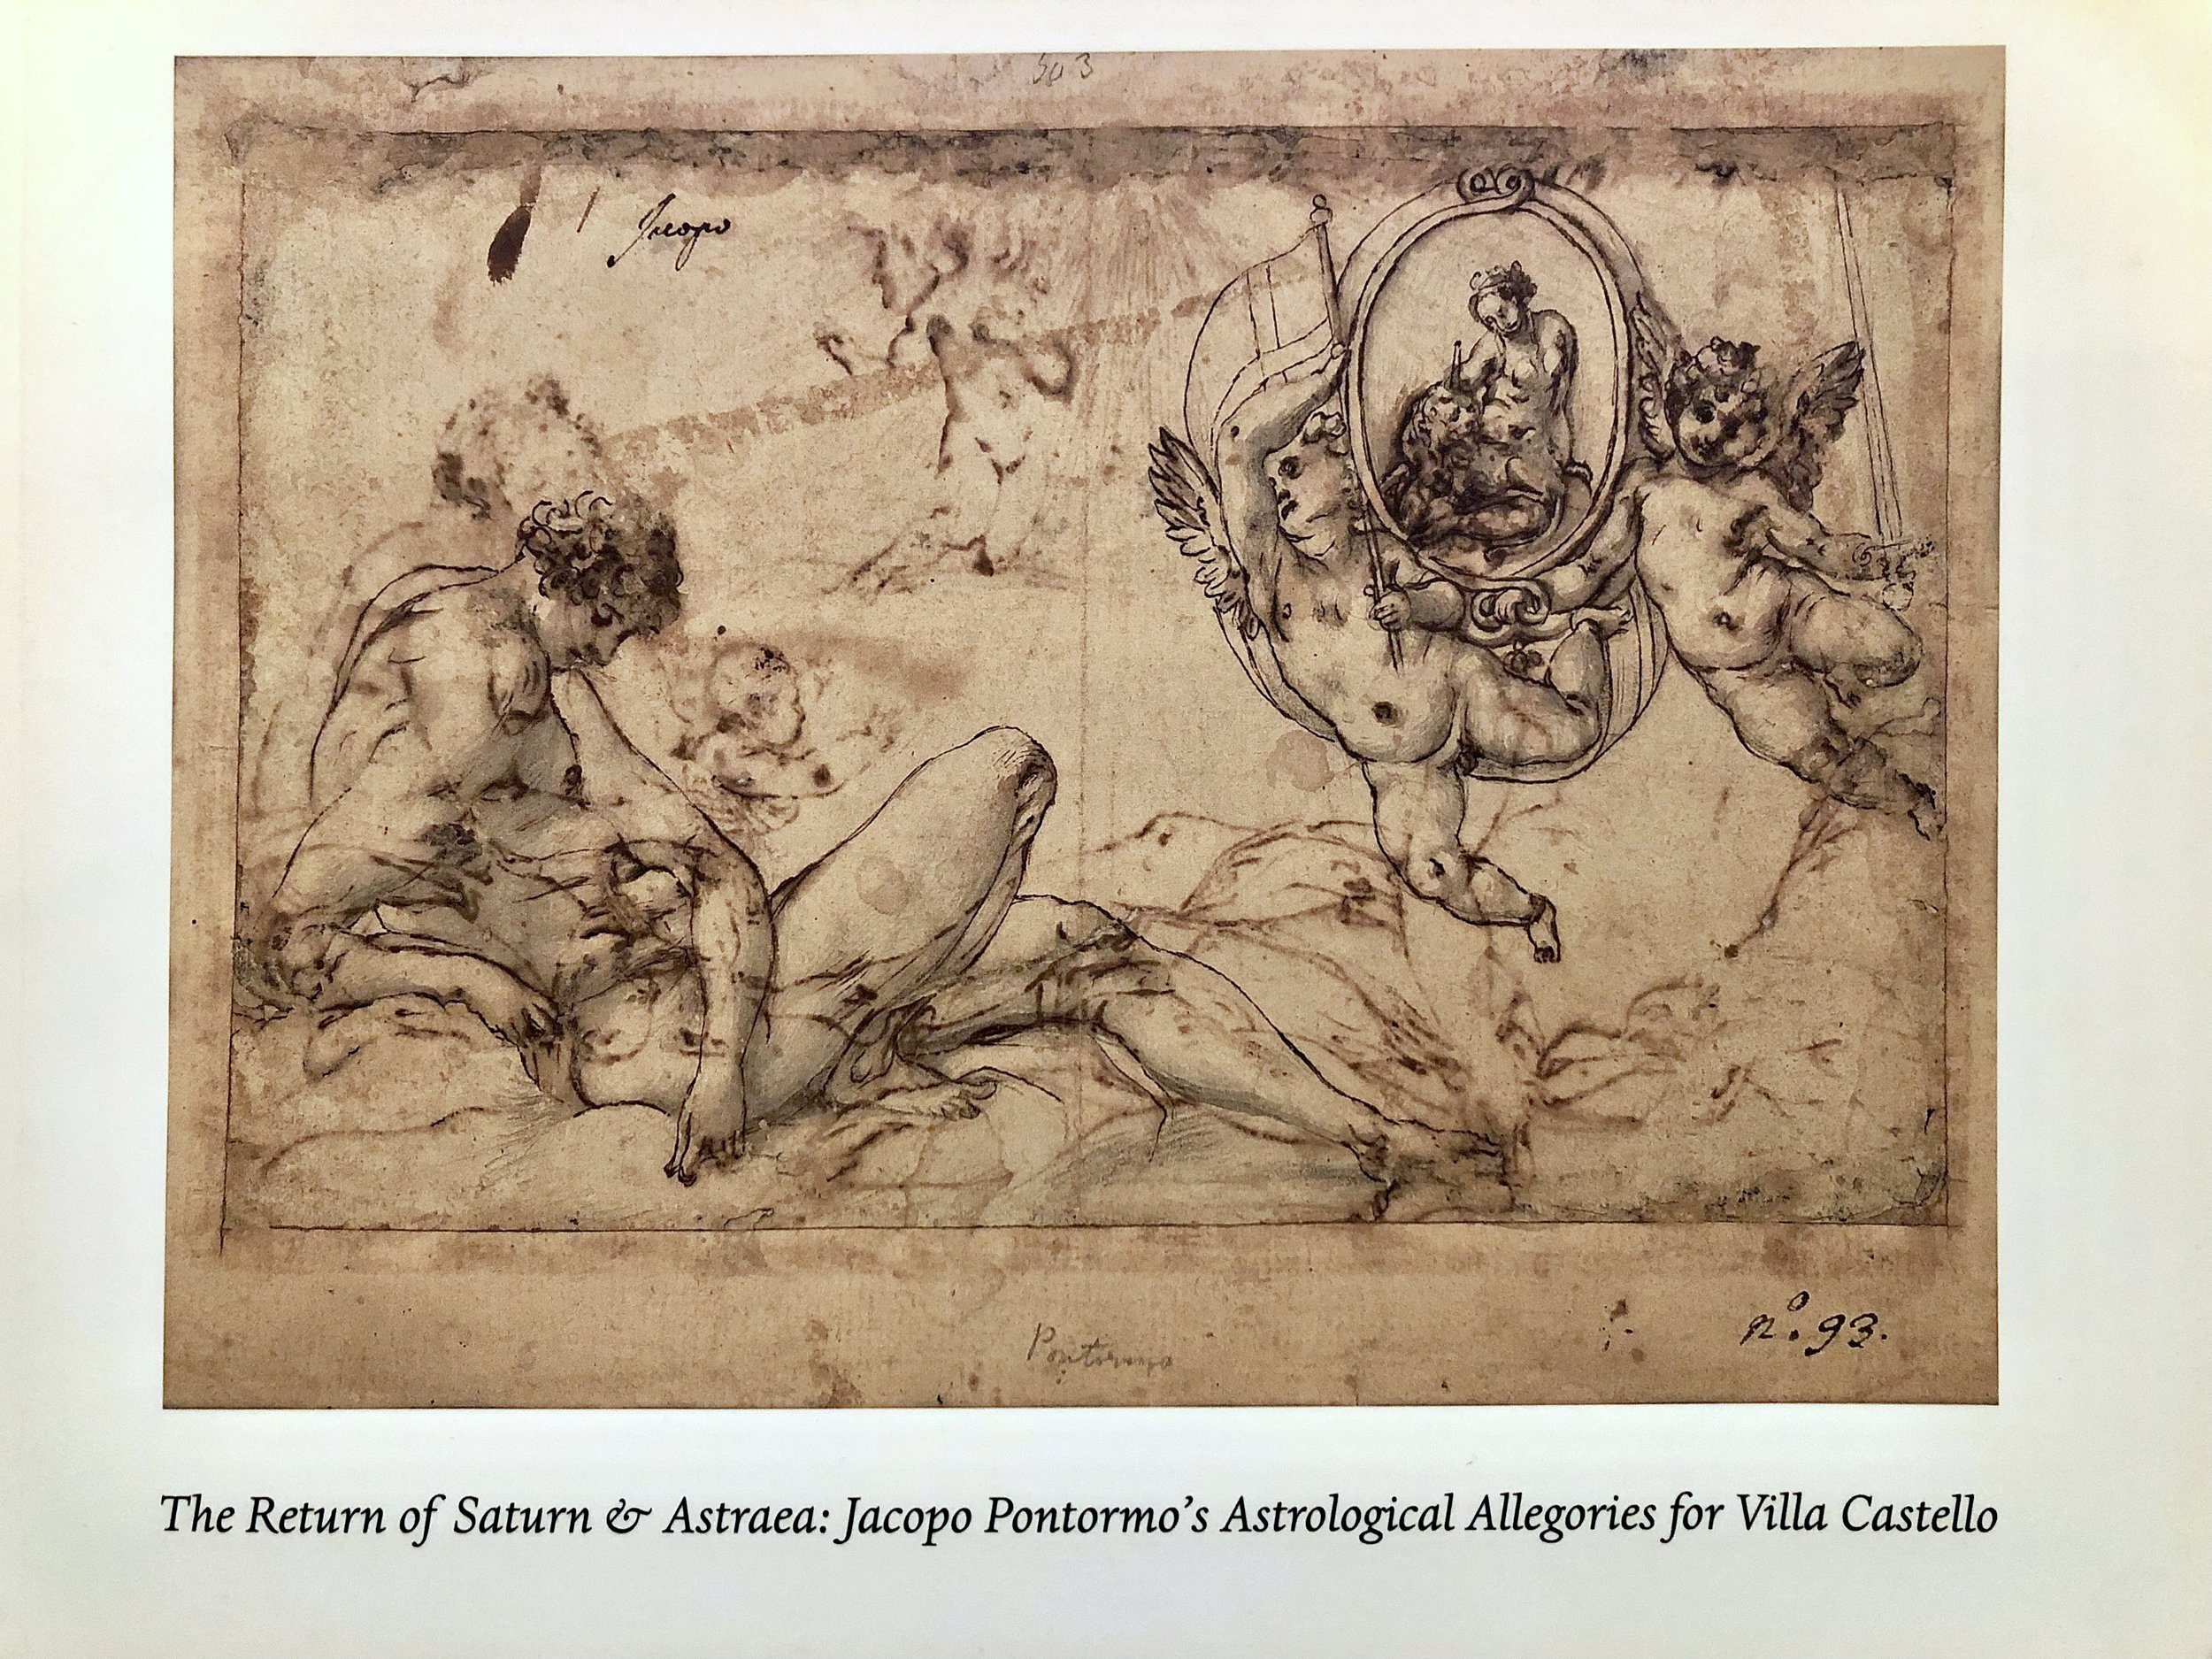 Christopher Bishop Fine Art,  The Return of Saturn & Astraea: Jacopo Pontormo's Astrological Allegories for Villa Castello . Scholarly catalogue to accompany the exhibition  Jacopo Pontormo's Astrological Allegories for Villa Castello , January 2018. Illustration design and image rights research by Allison Wucher, Silverpoint Fine Art.